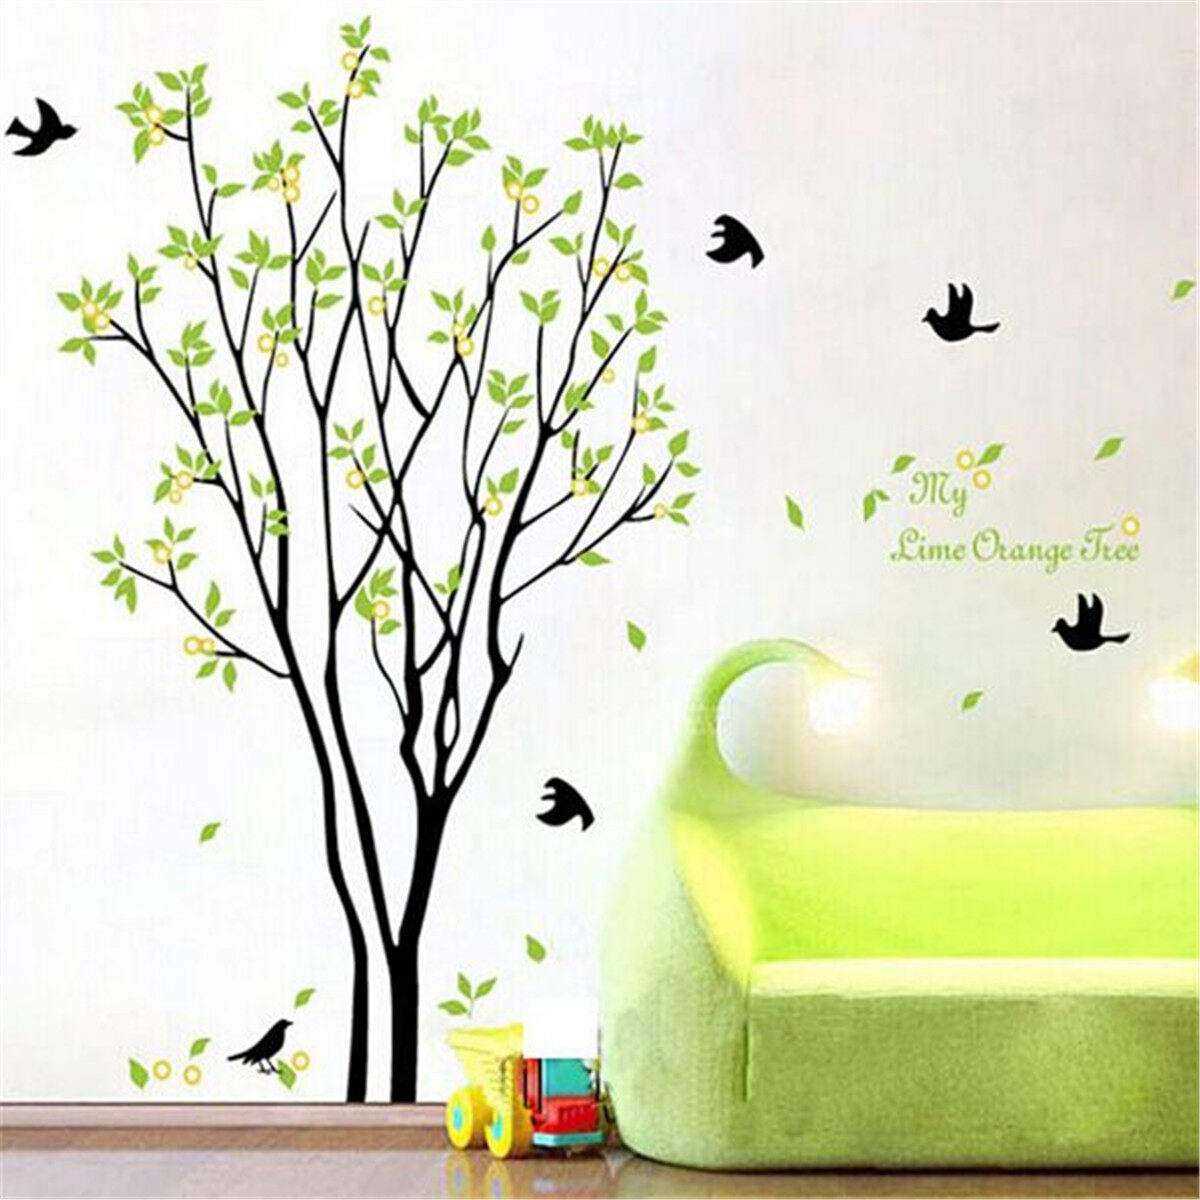 tree bird quote removable vinyl wall decal mural home art diy  - tree bird quote removable vinyl wall decal mural home art diy decorstickers  lazada malaysia